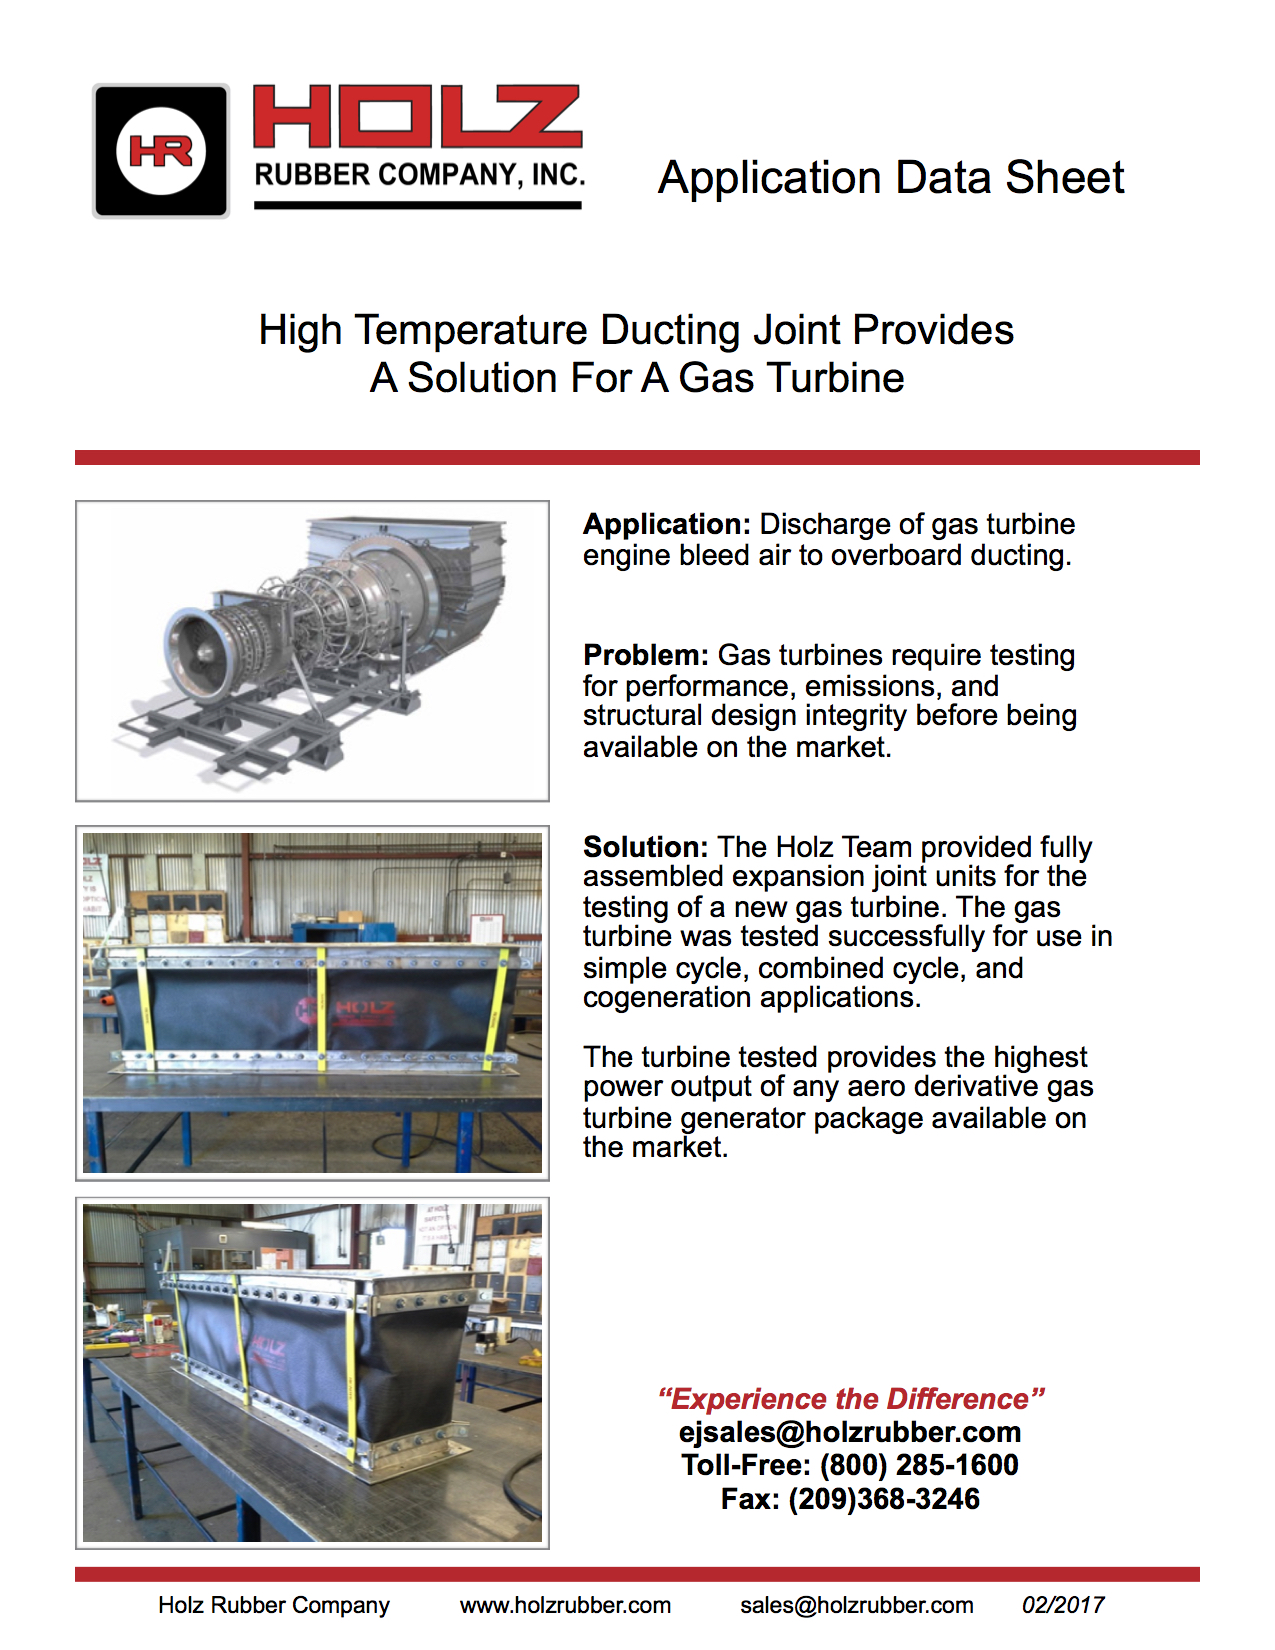 High Temperature Ducting Joint Provides A Solution For A Gas Turbine